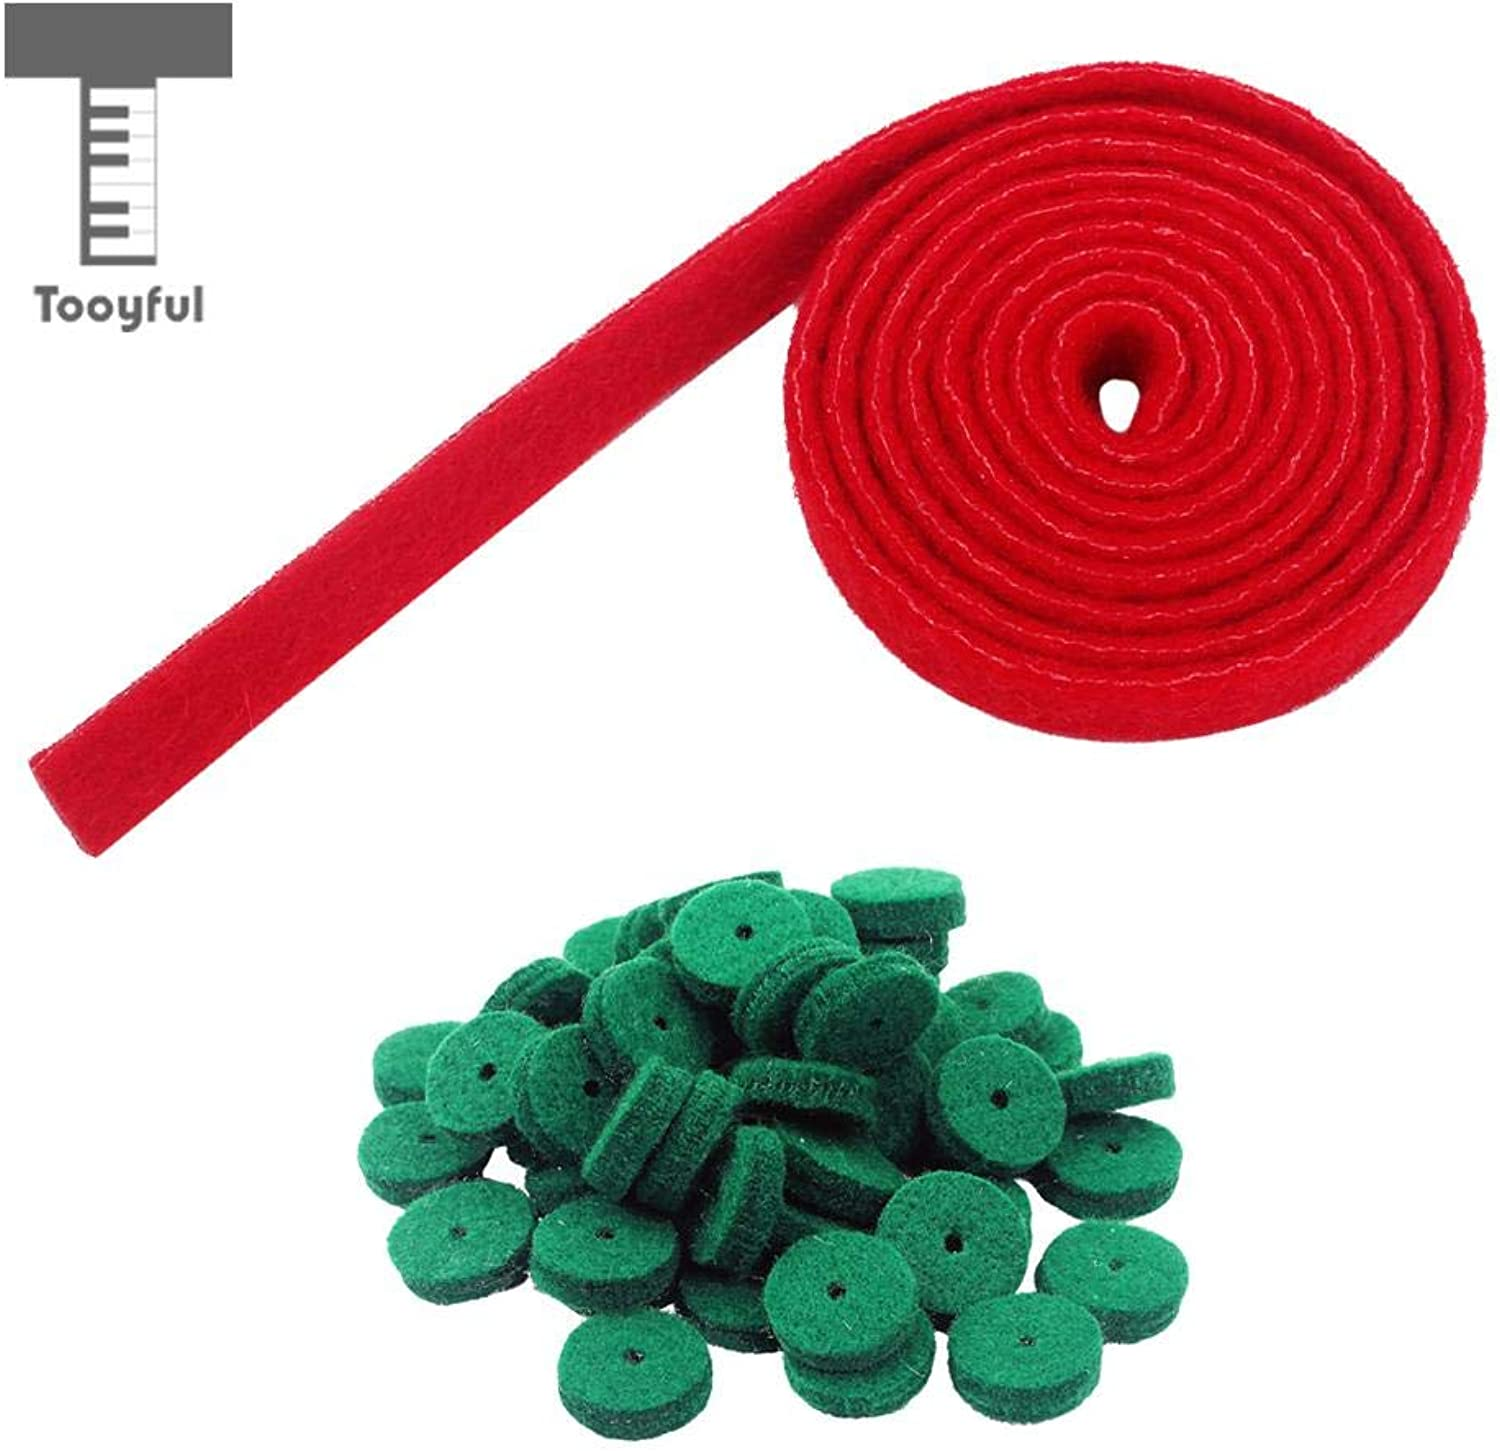 SalaFnt  Piano Tuning Felt Temperament Strip Red+ 90 Pcs Regulating Tool Balance Rail Green for Pianist